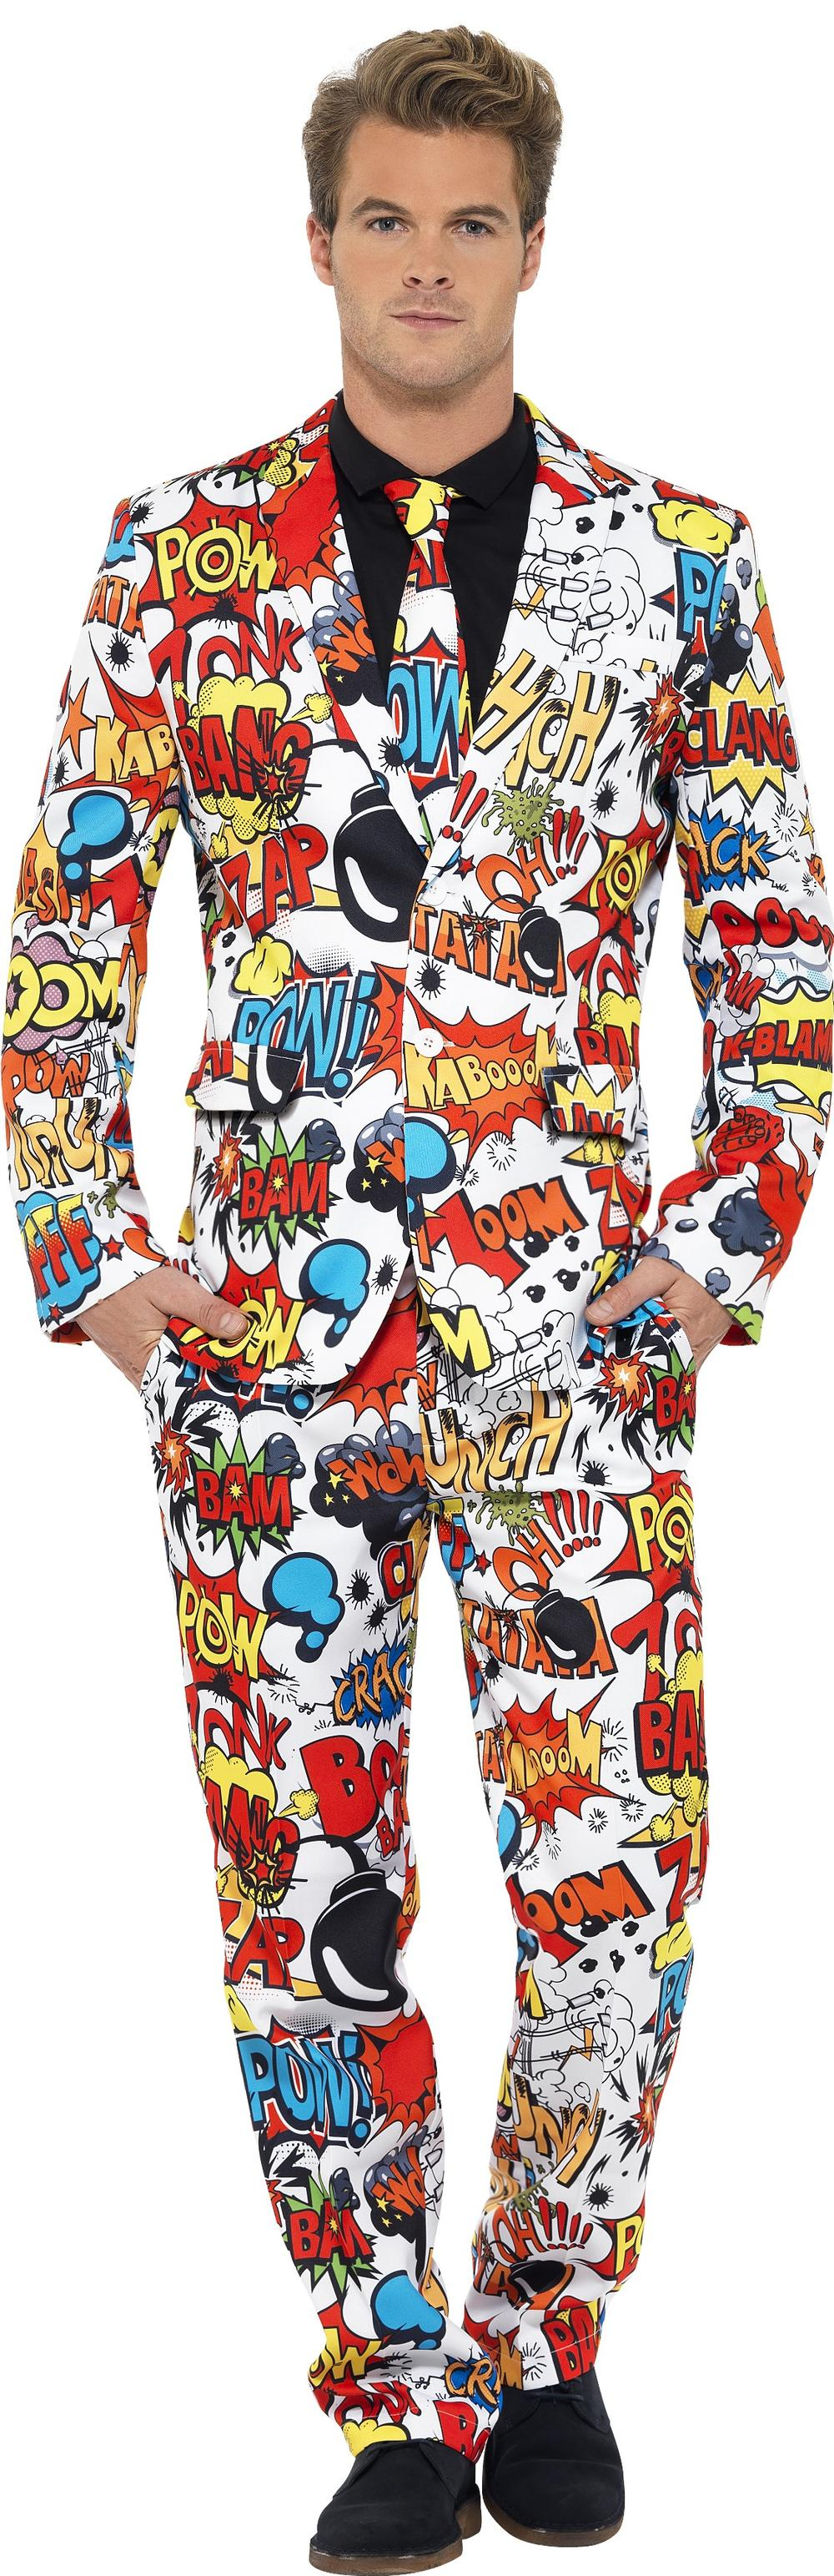 Comic Strip Suit Mens Fancy Dress Superhero Costume Book Party Adults Outfit New